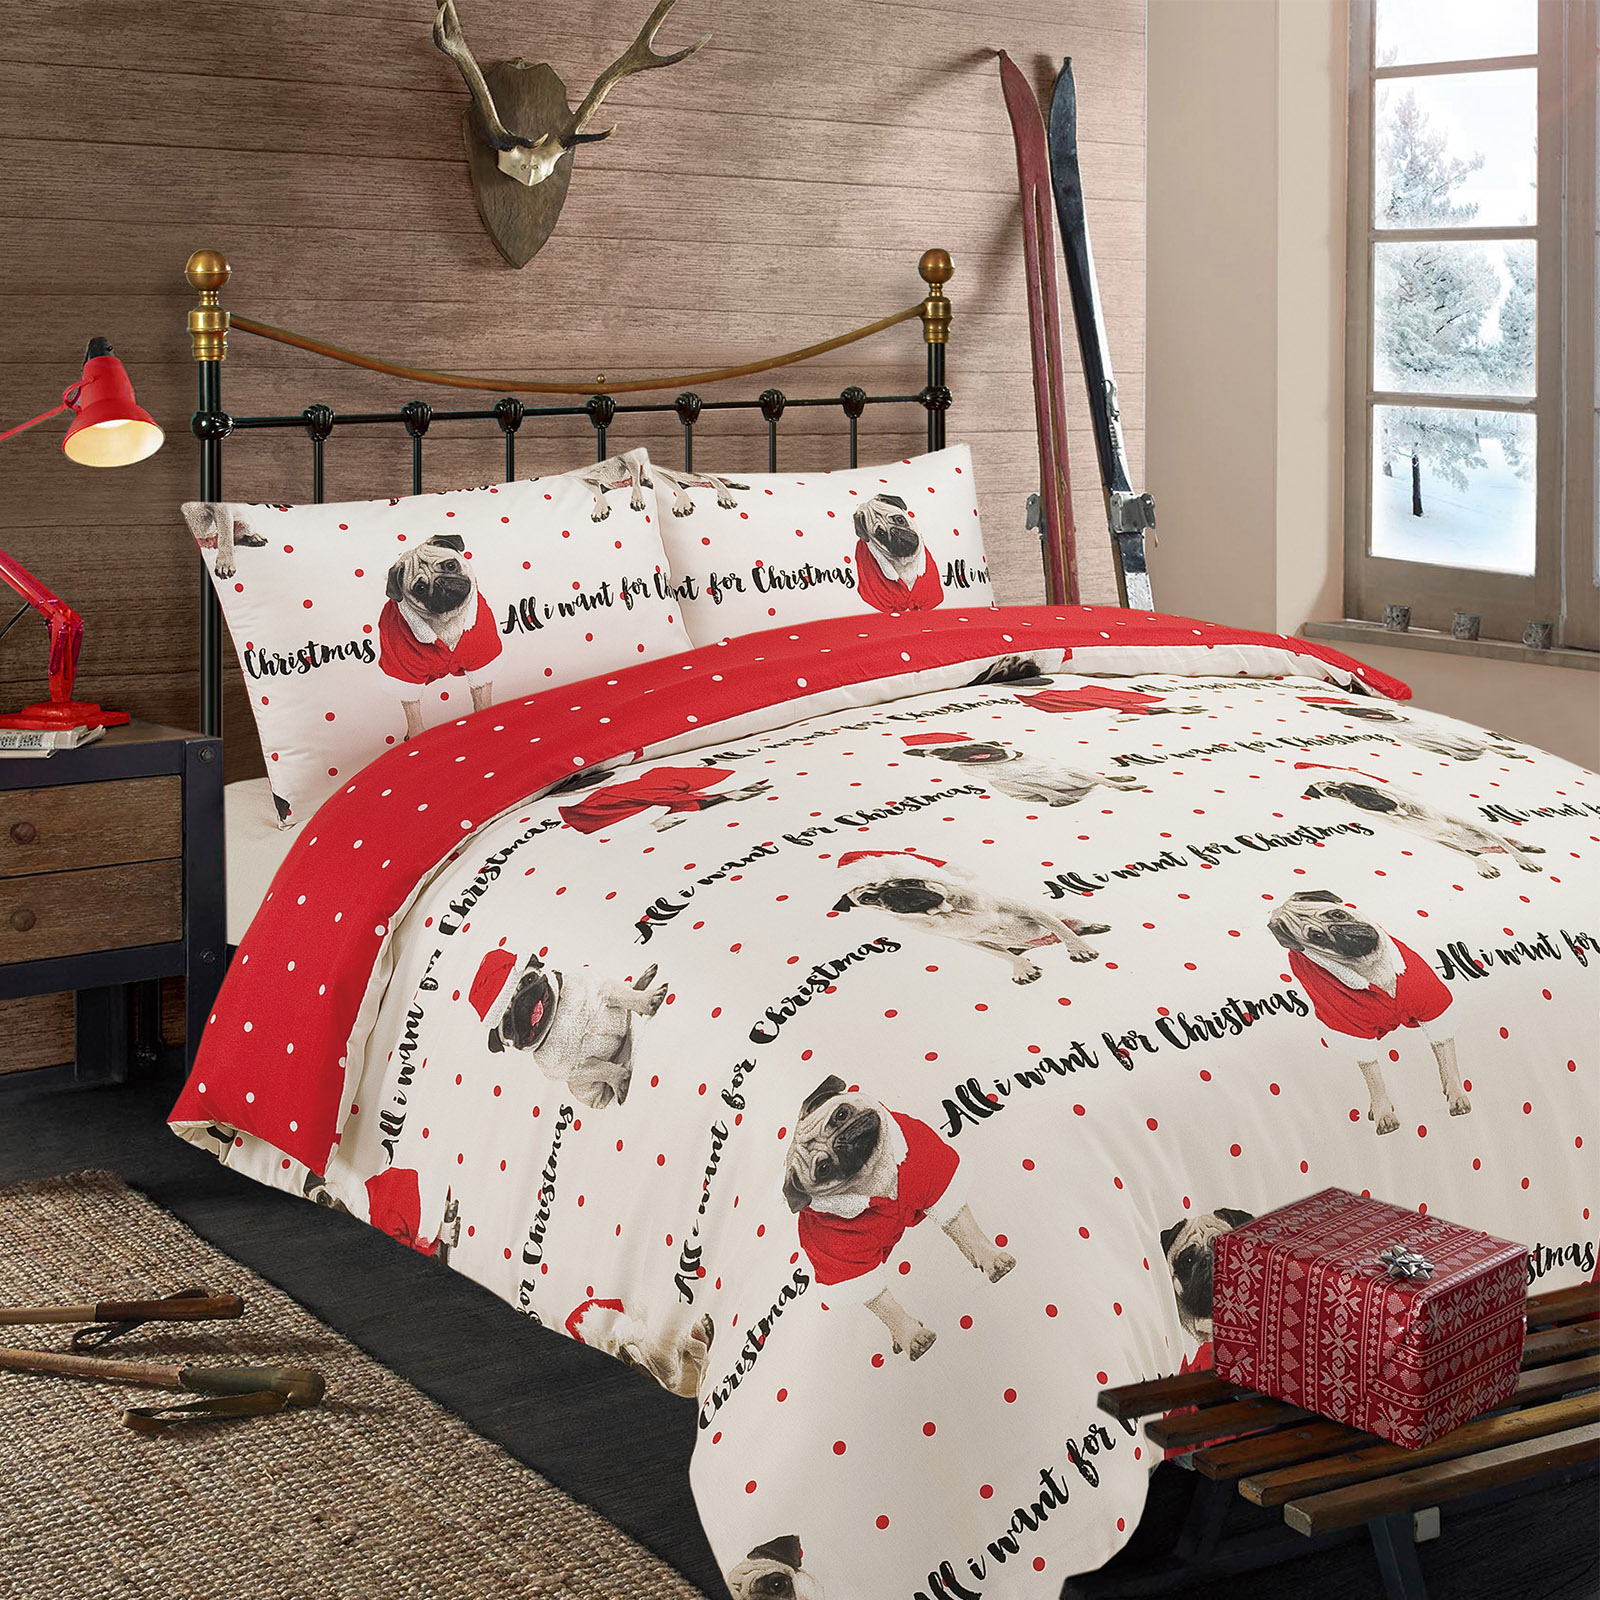 Dreamscene Pug Duvet Cover With Pillow Case Bedding